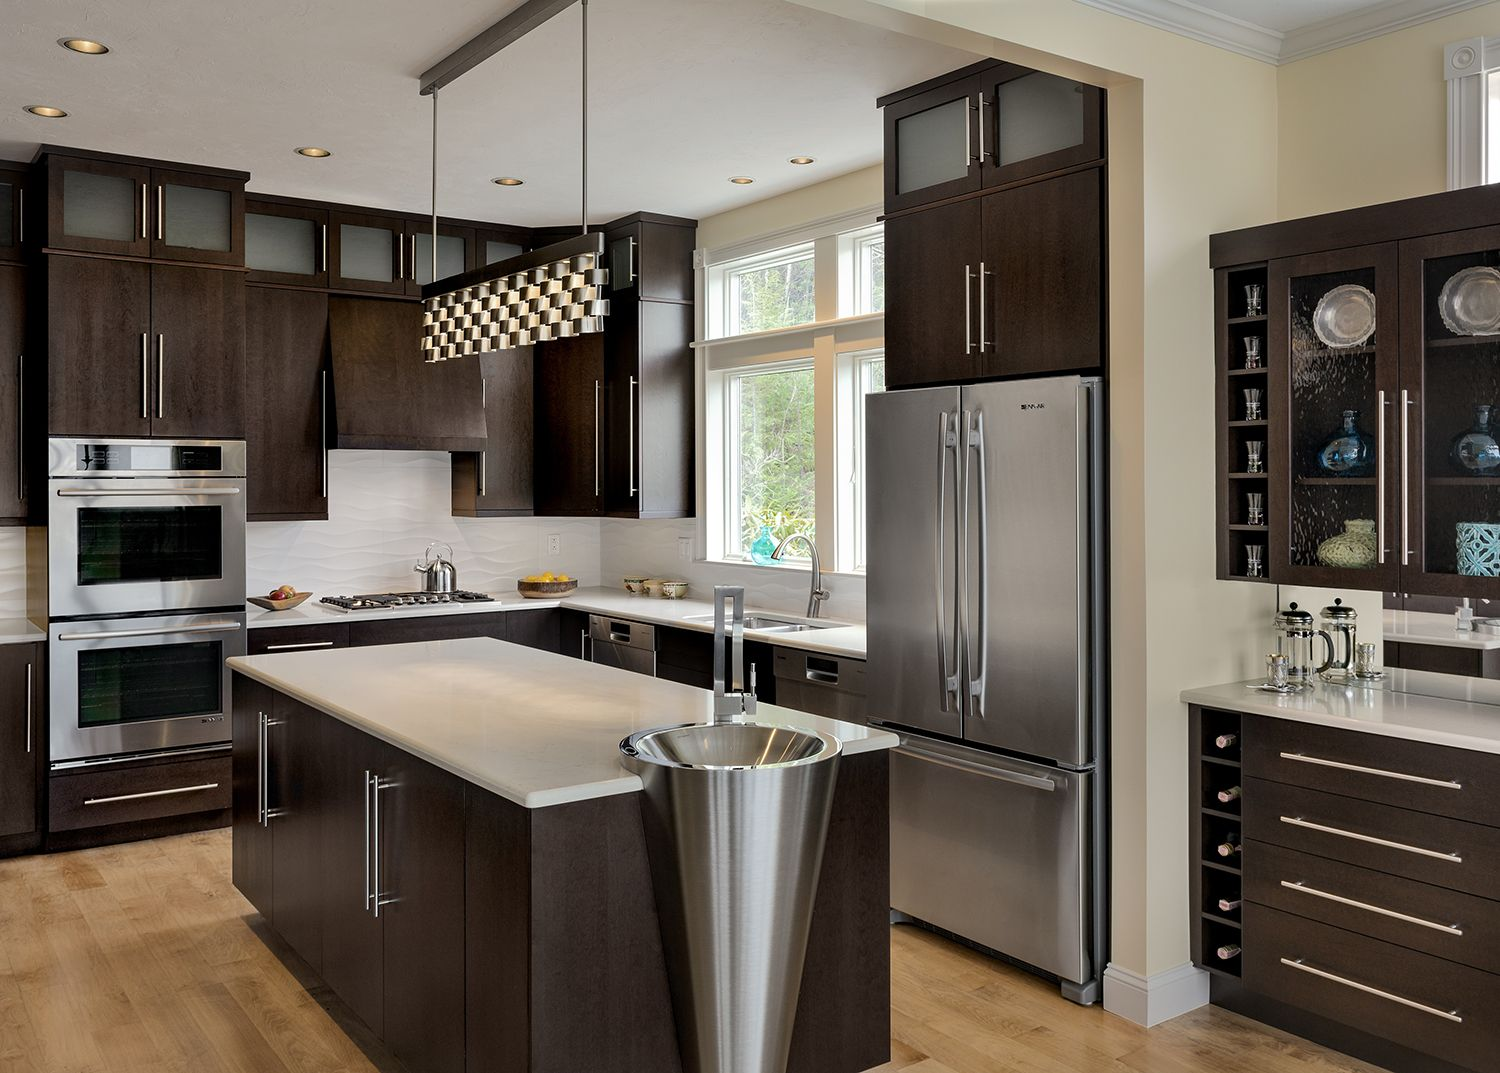 Give Your Old Styled And Stereotype Cabinets A New Look By Painting Them Out It Modern Kitchen Renovation Kitchen Design Planner Contemporary Kitchen Interior